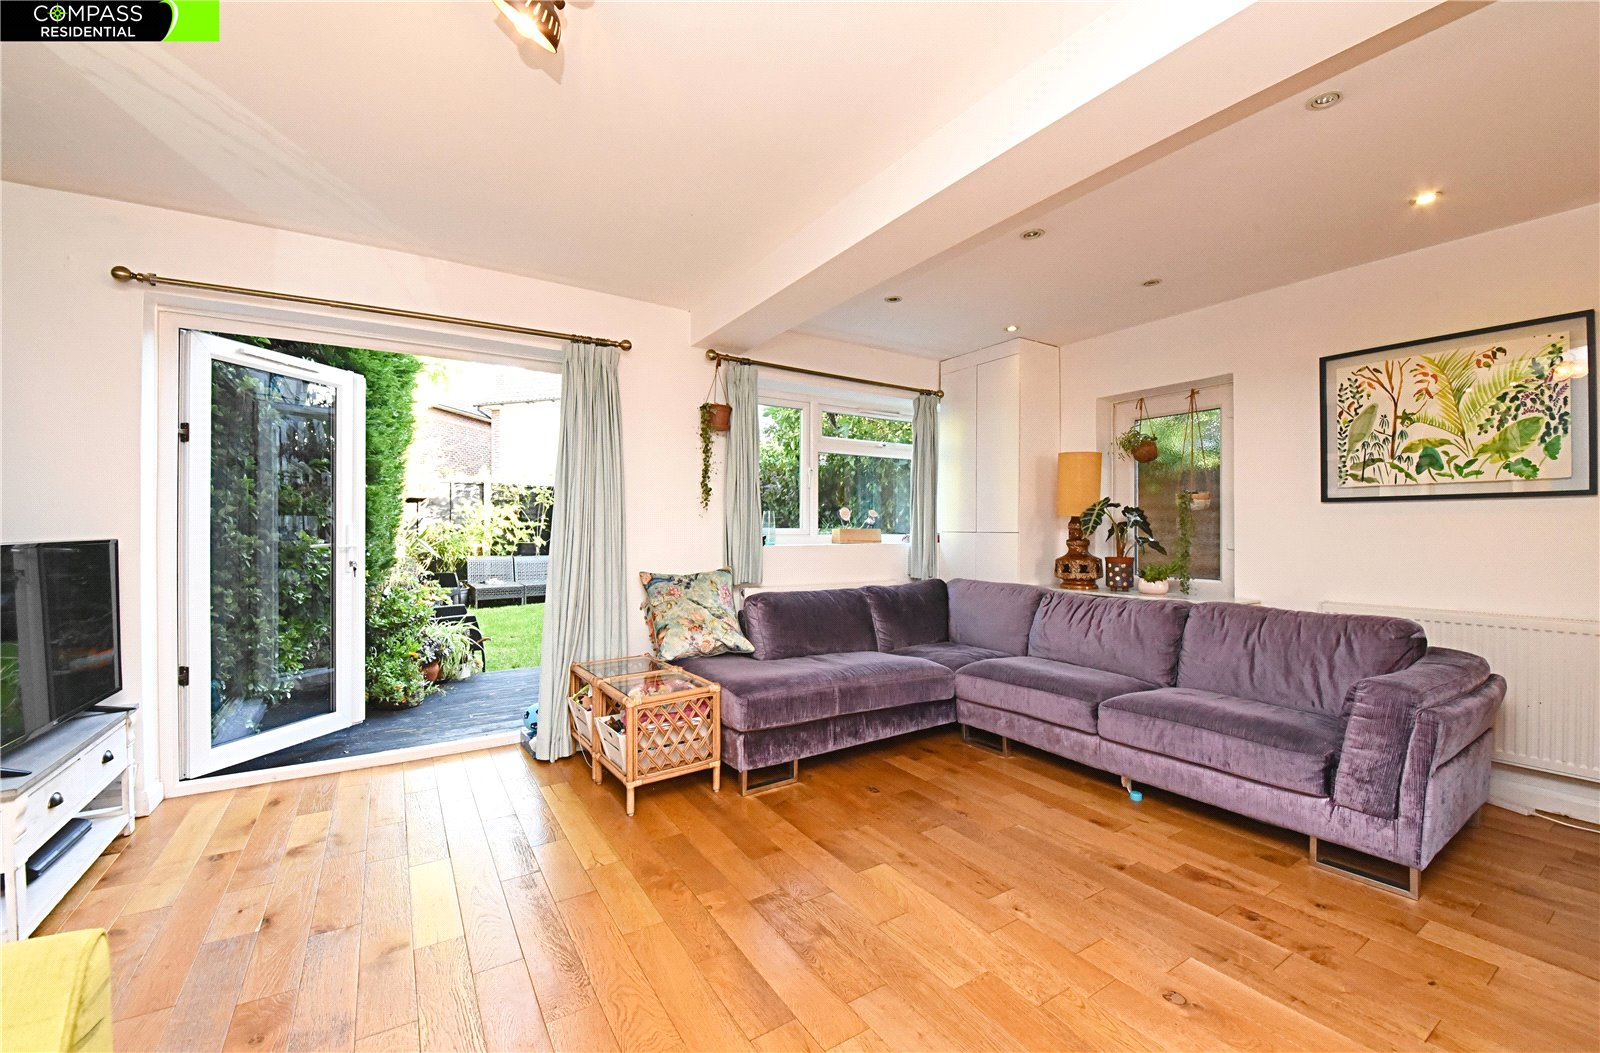 4 bed house for sale in Whetstone, N20 0HJ  - Property Image 9